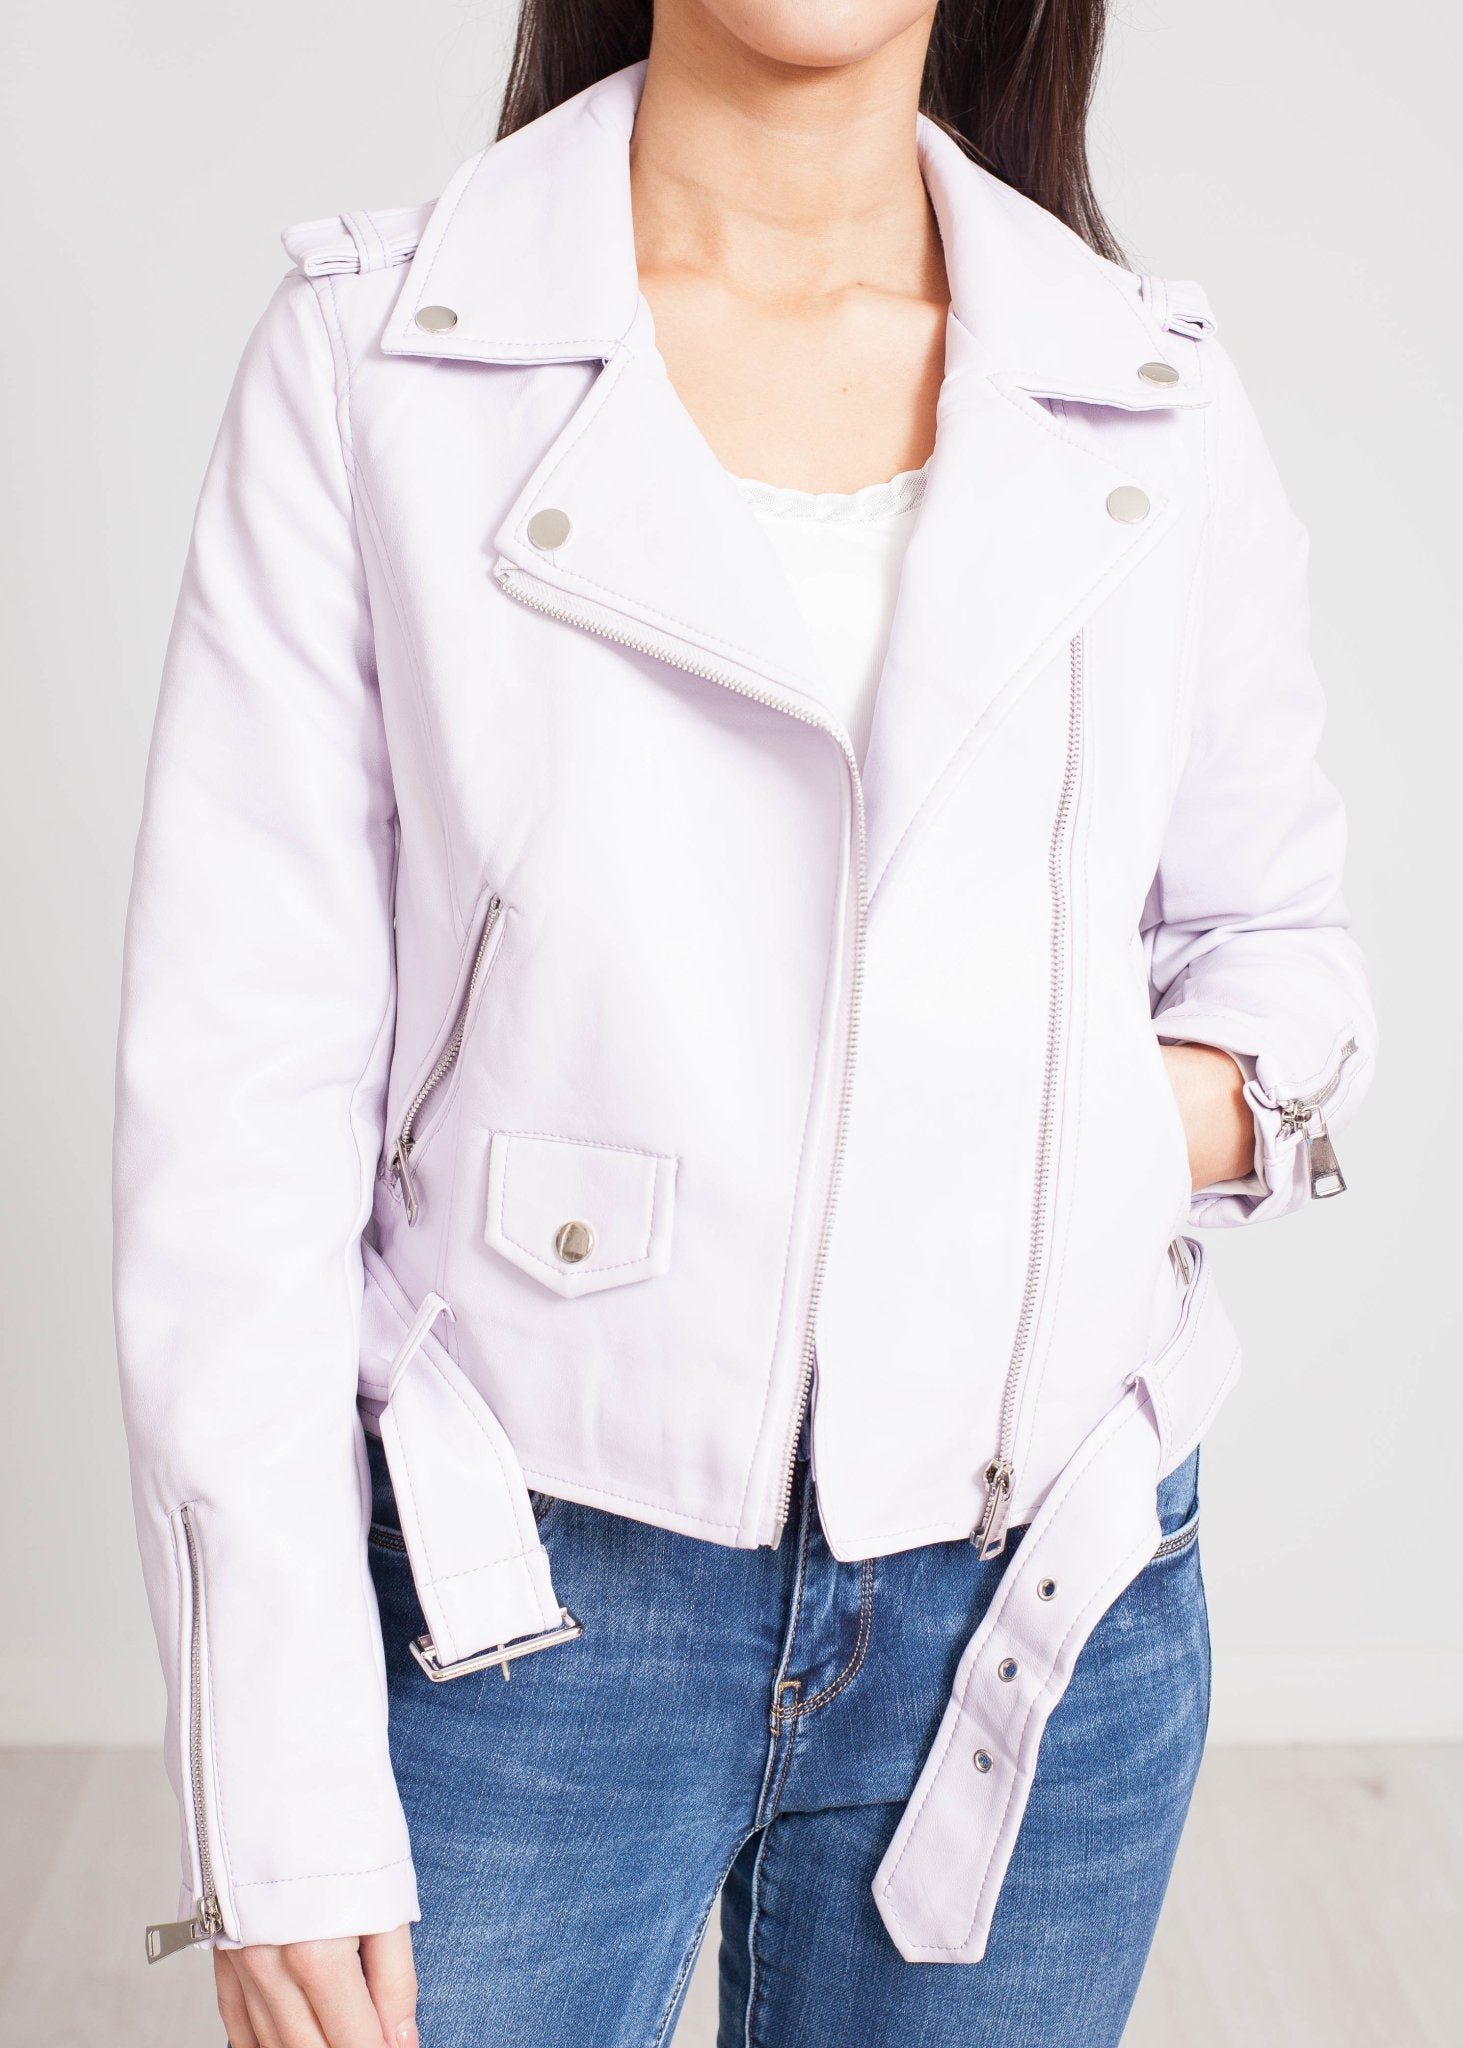 Caitlyn Belted Leather Jacket In Lilac - The Walk in Wardrobe